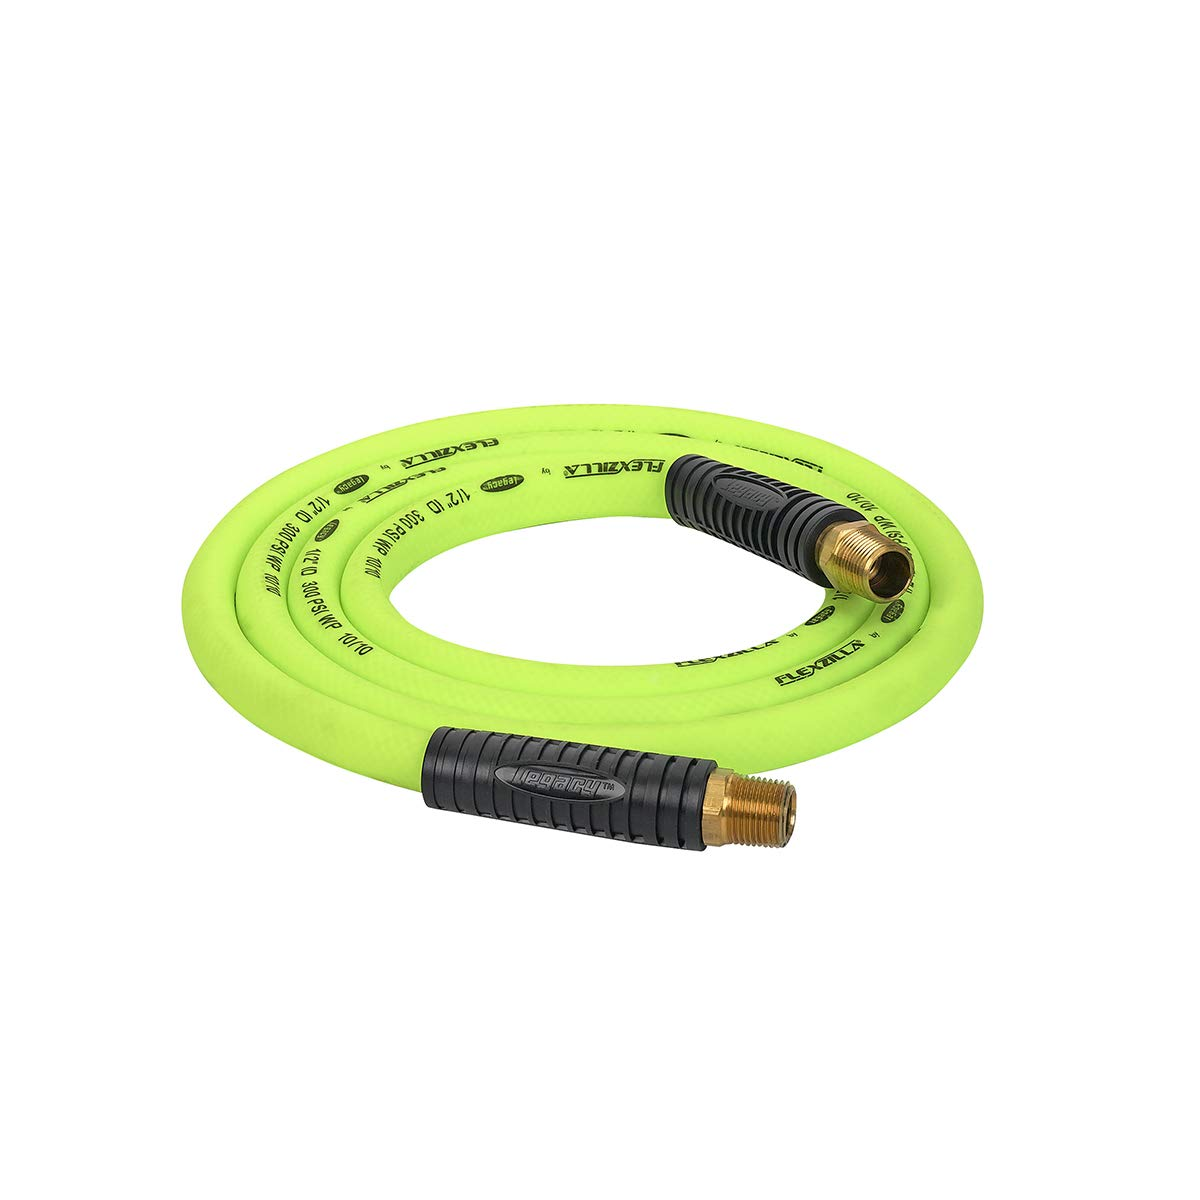 Manguera neumatica : Flexzilla Swivel Whip Air Hose 1/2 x 3m